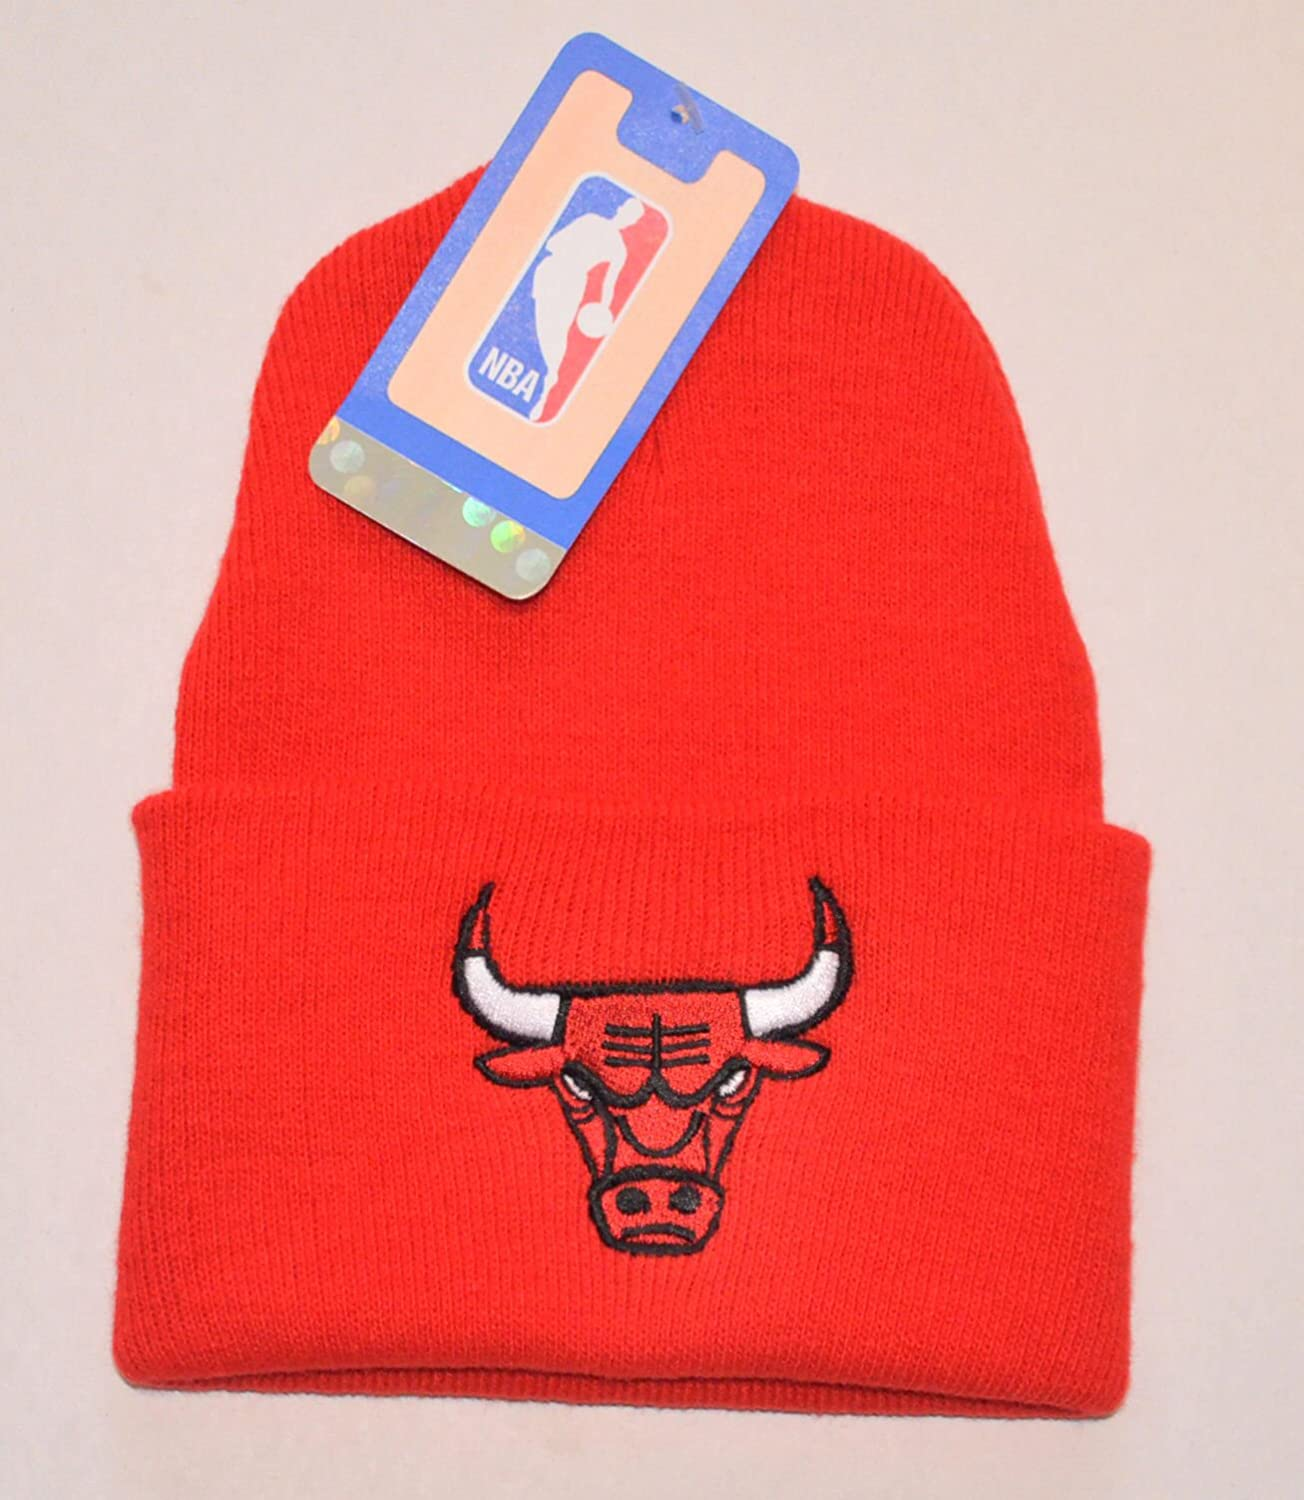 Chicago Bulls Red Logo Only Beanie Hat - NBA Cuffed Knit Toque Cap free shipping new winter unisex oversized slouch cap plicate baggy beanie knit crochet hot hat y107